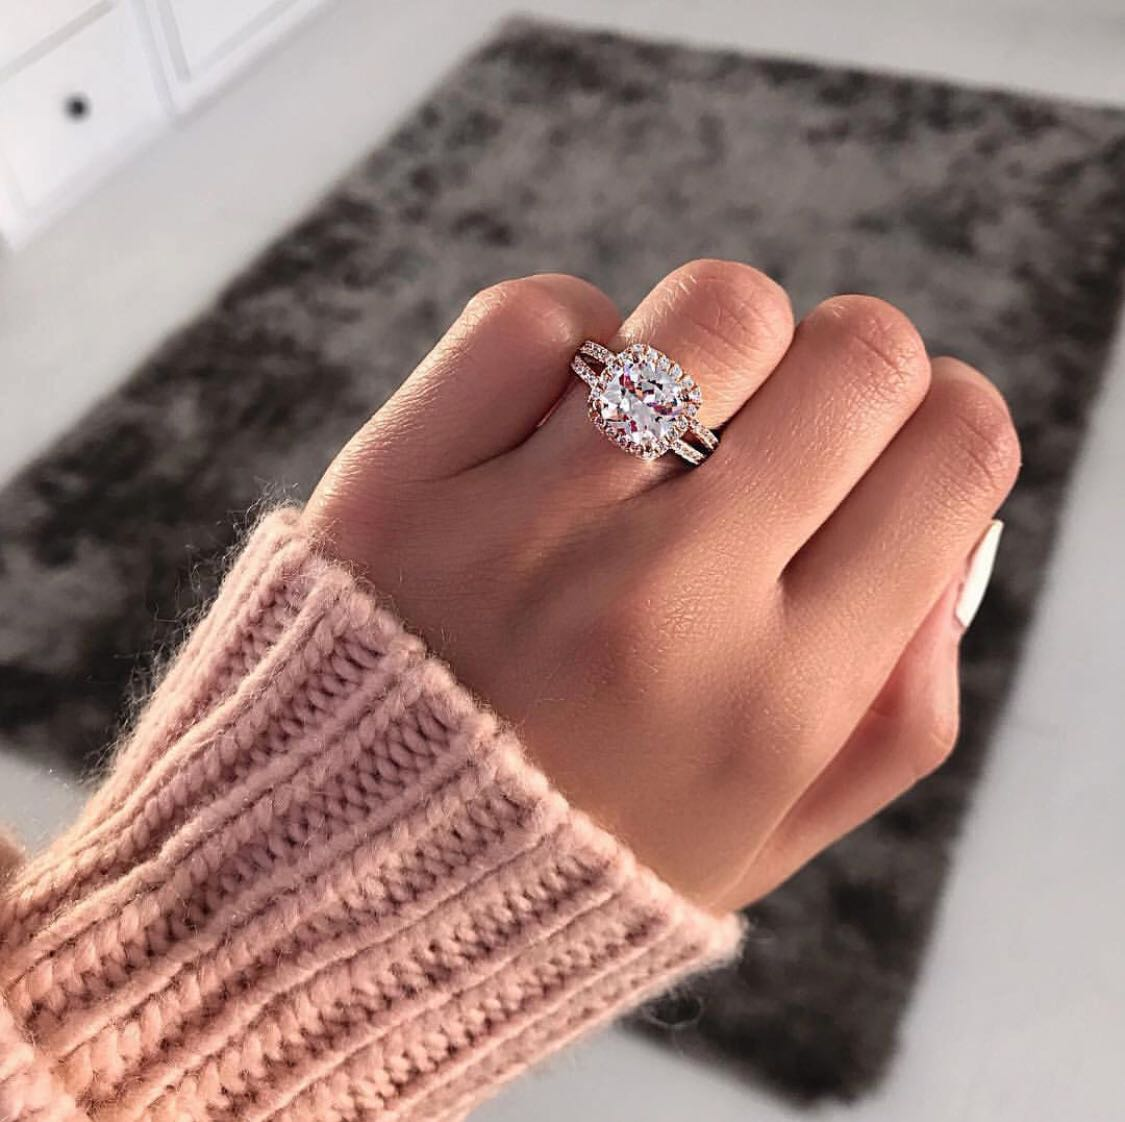 310897c22 LoveWits 925, Women's Fashion, Jewellery, Rings on Carousell